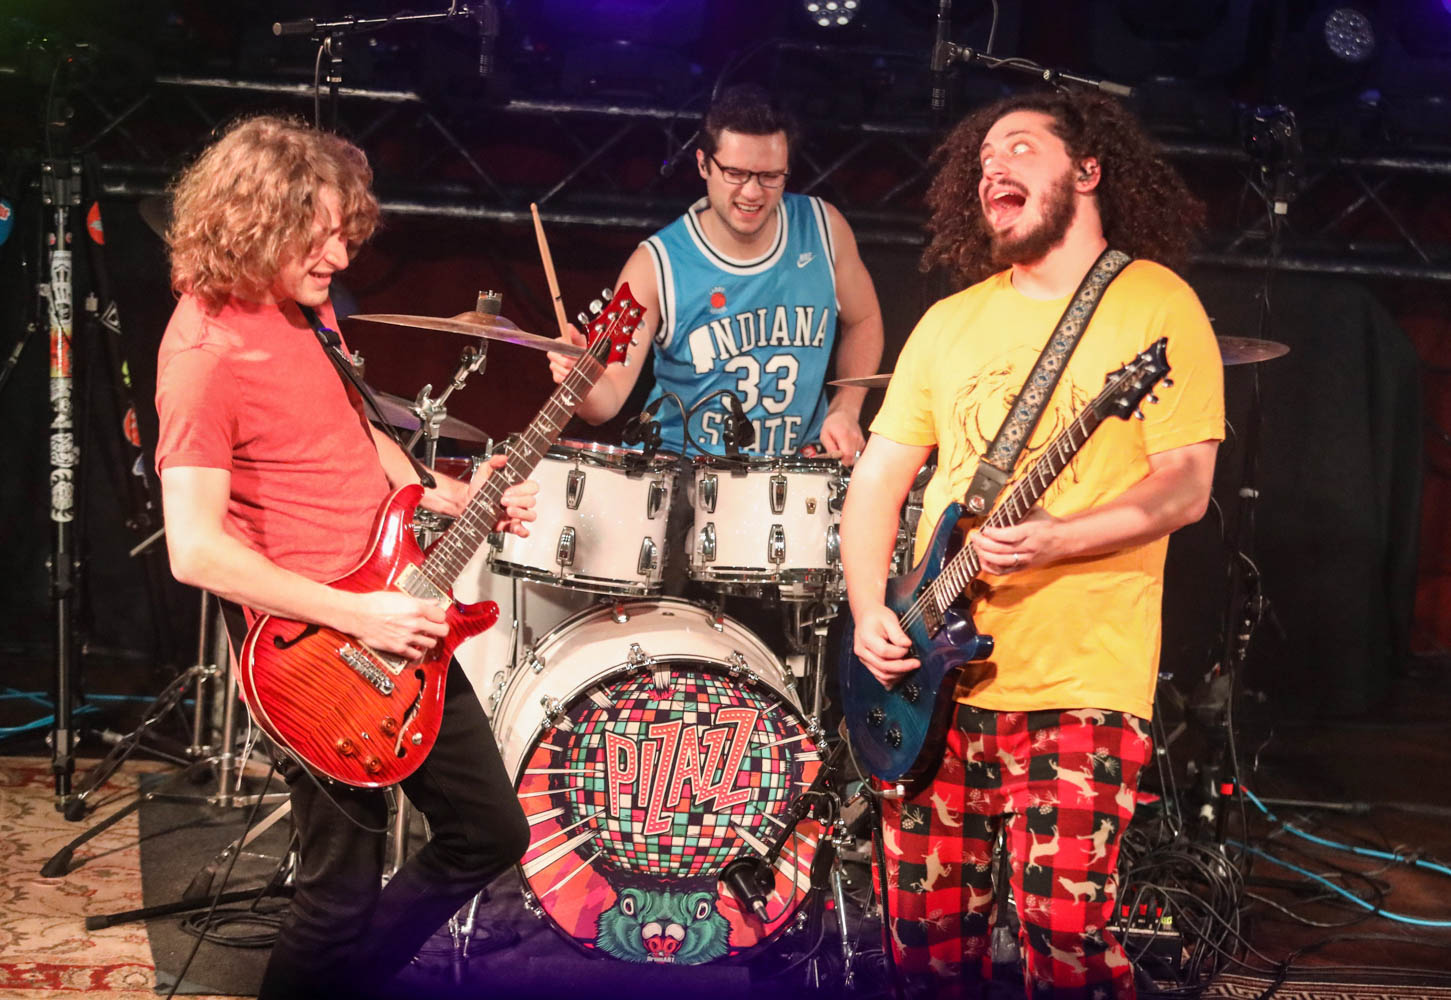 Livestream Alert: Pigeons Playing Ping Pong Schedule Free 4/20 Harvest Party on The Relix Channel on Twitch